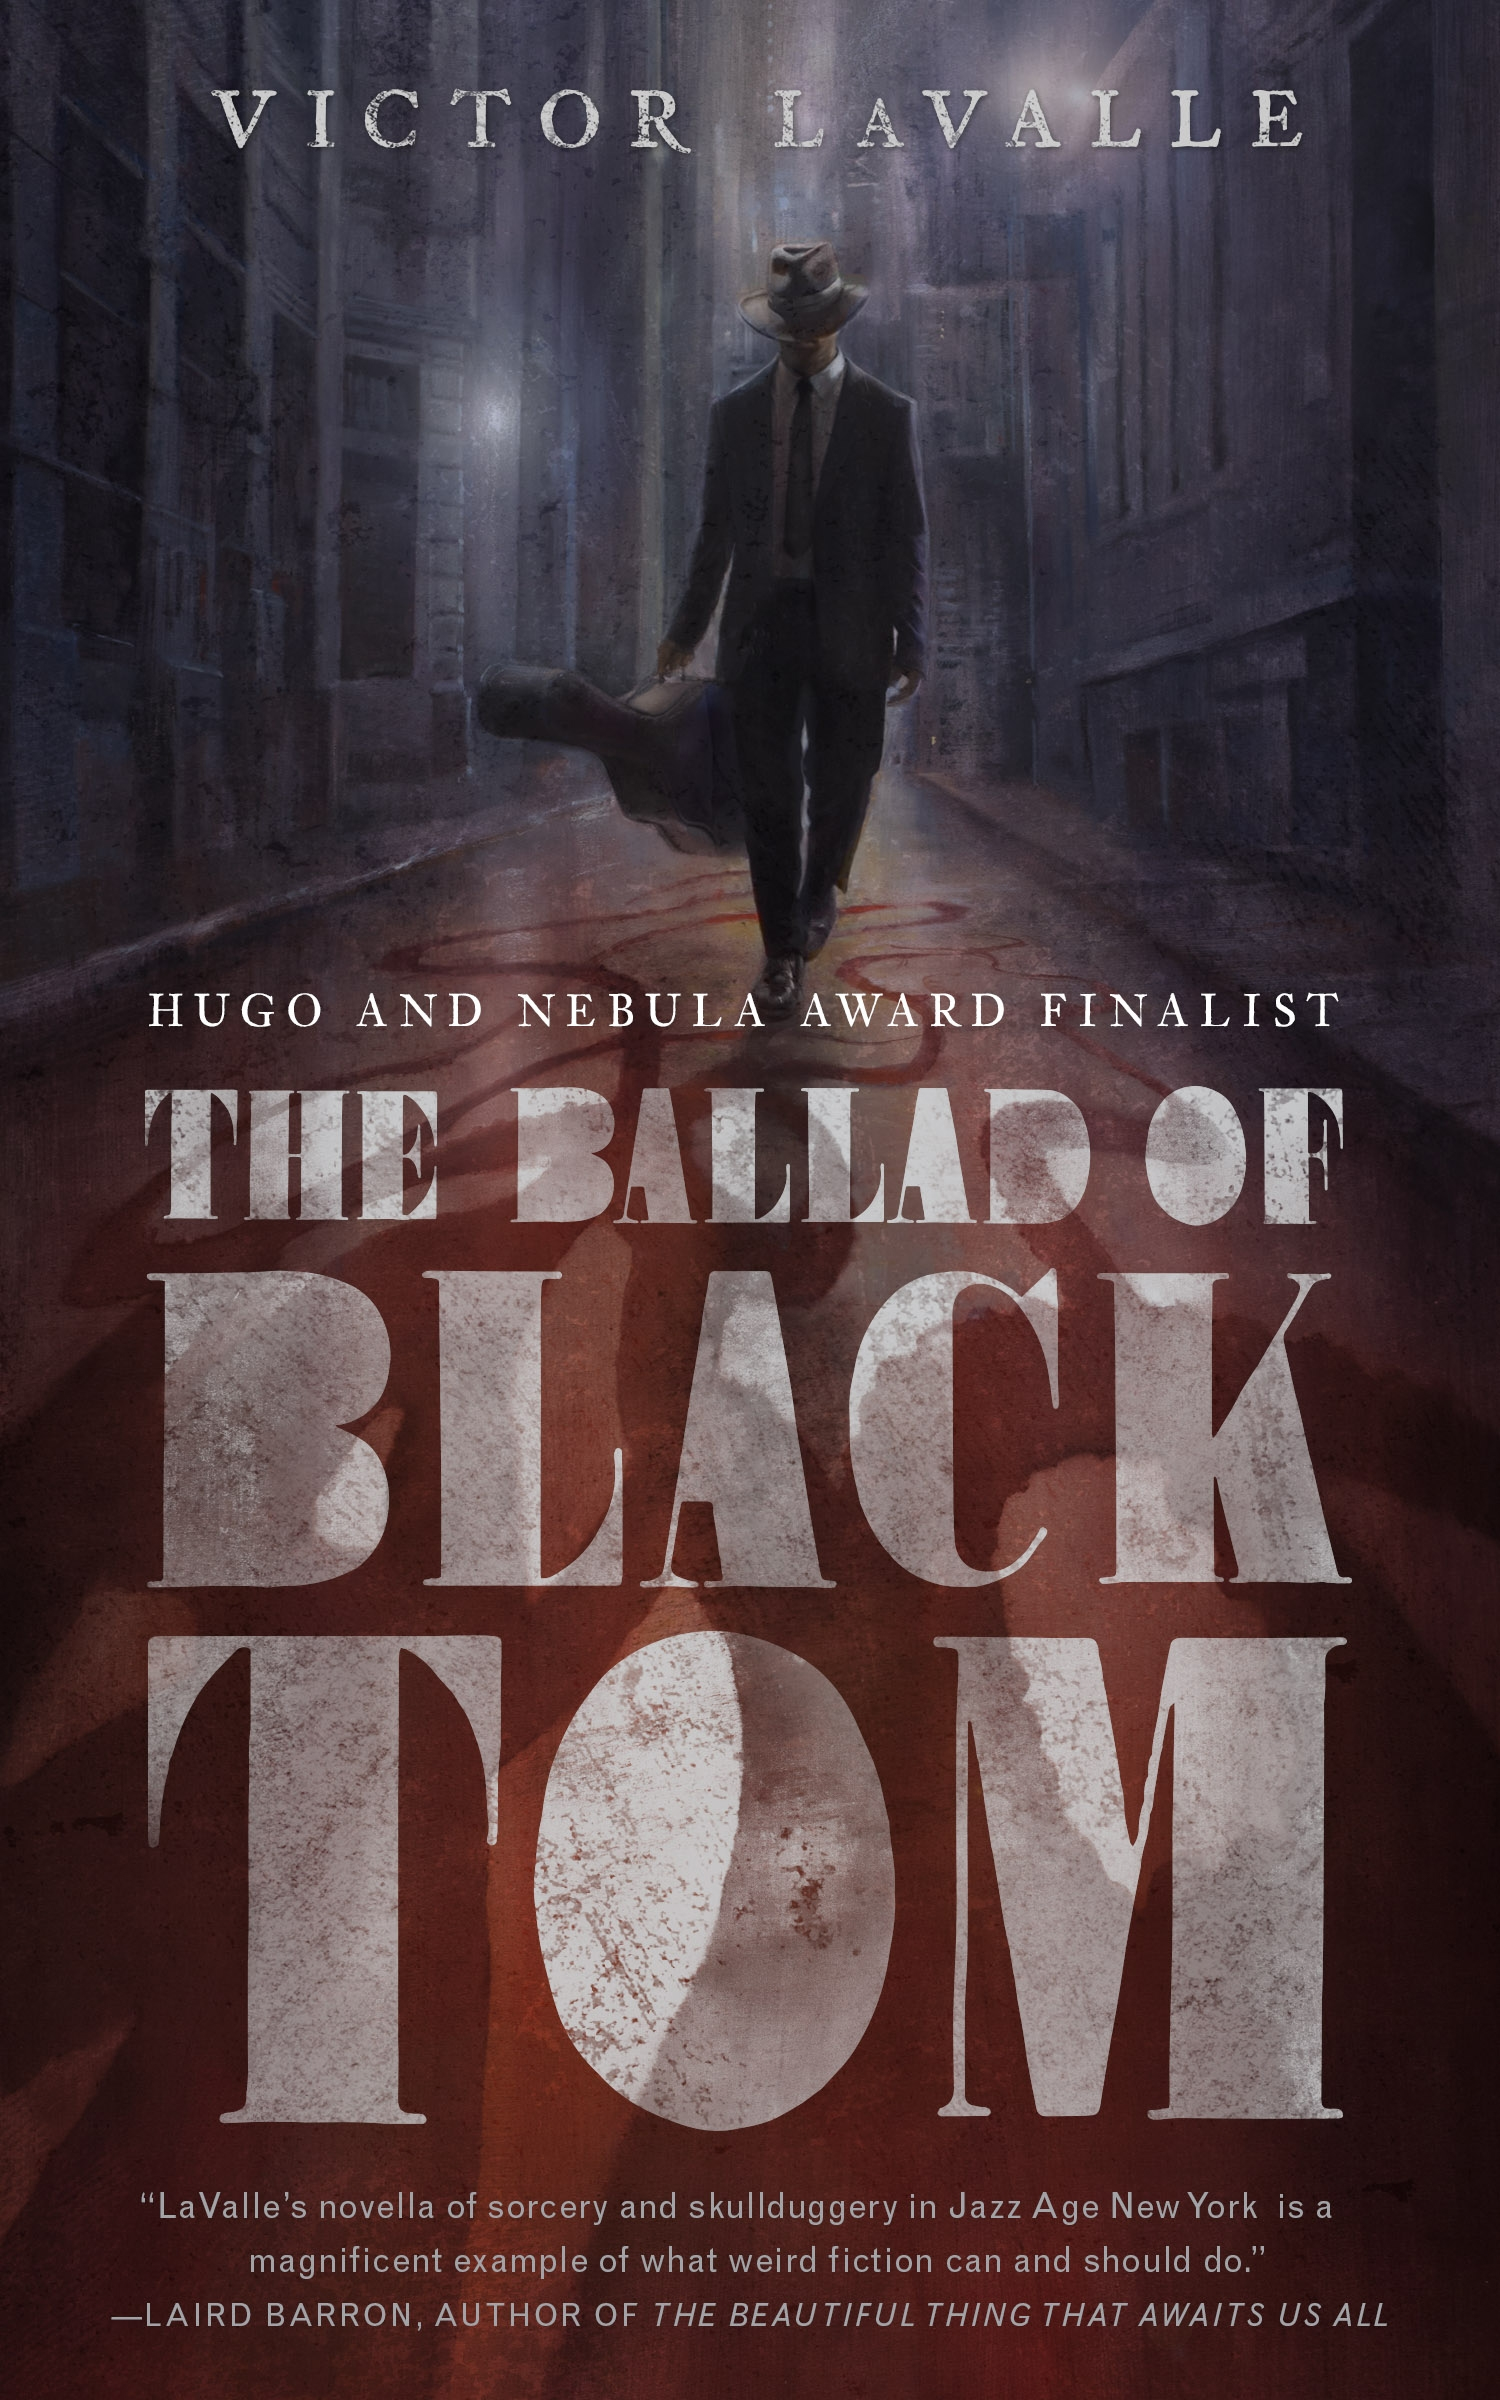 Download a Free Ebook of The Ballad of Black Tom by Victor